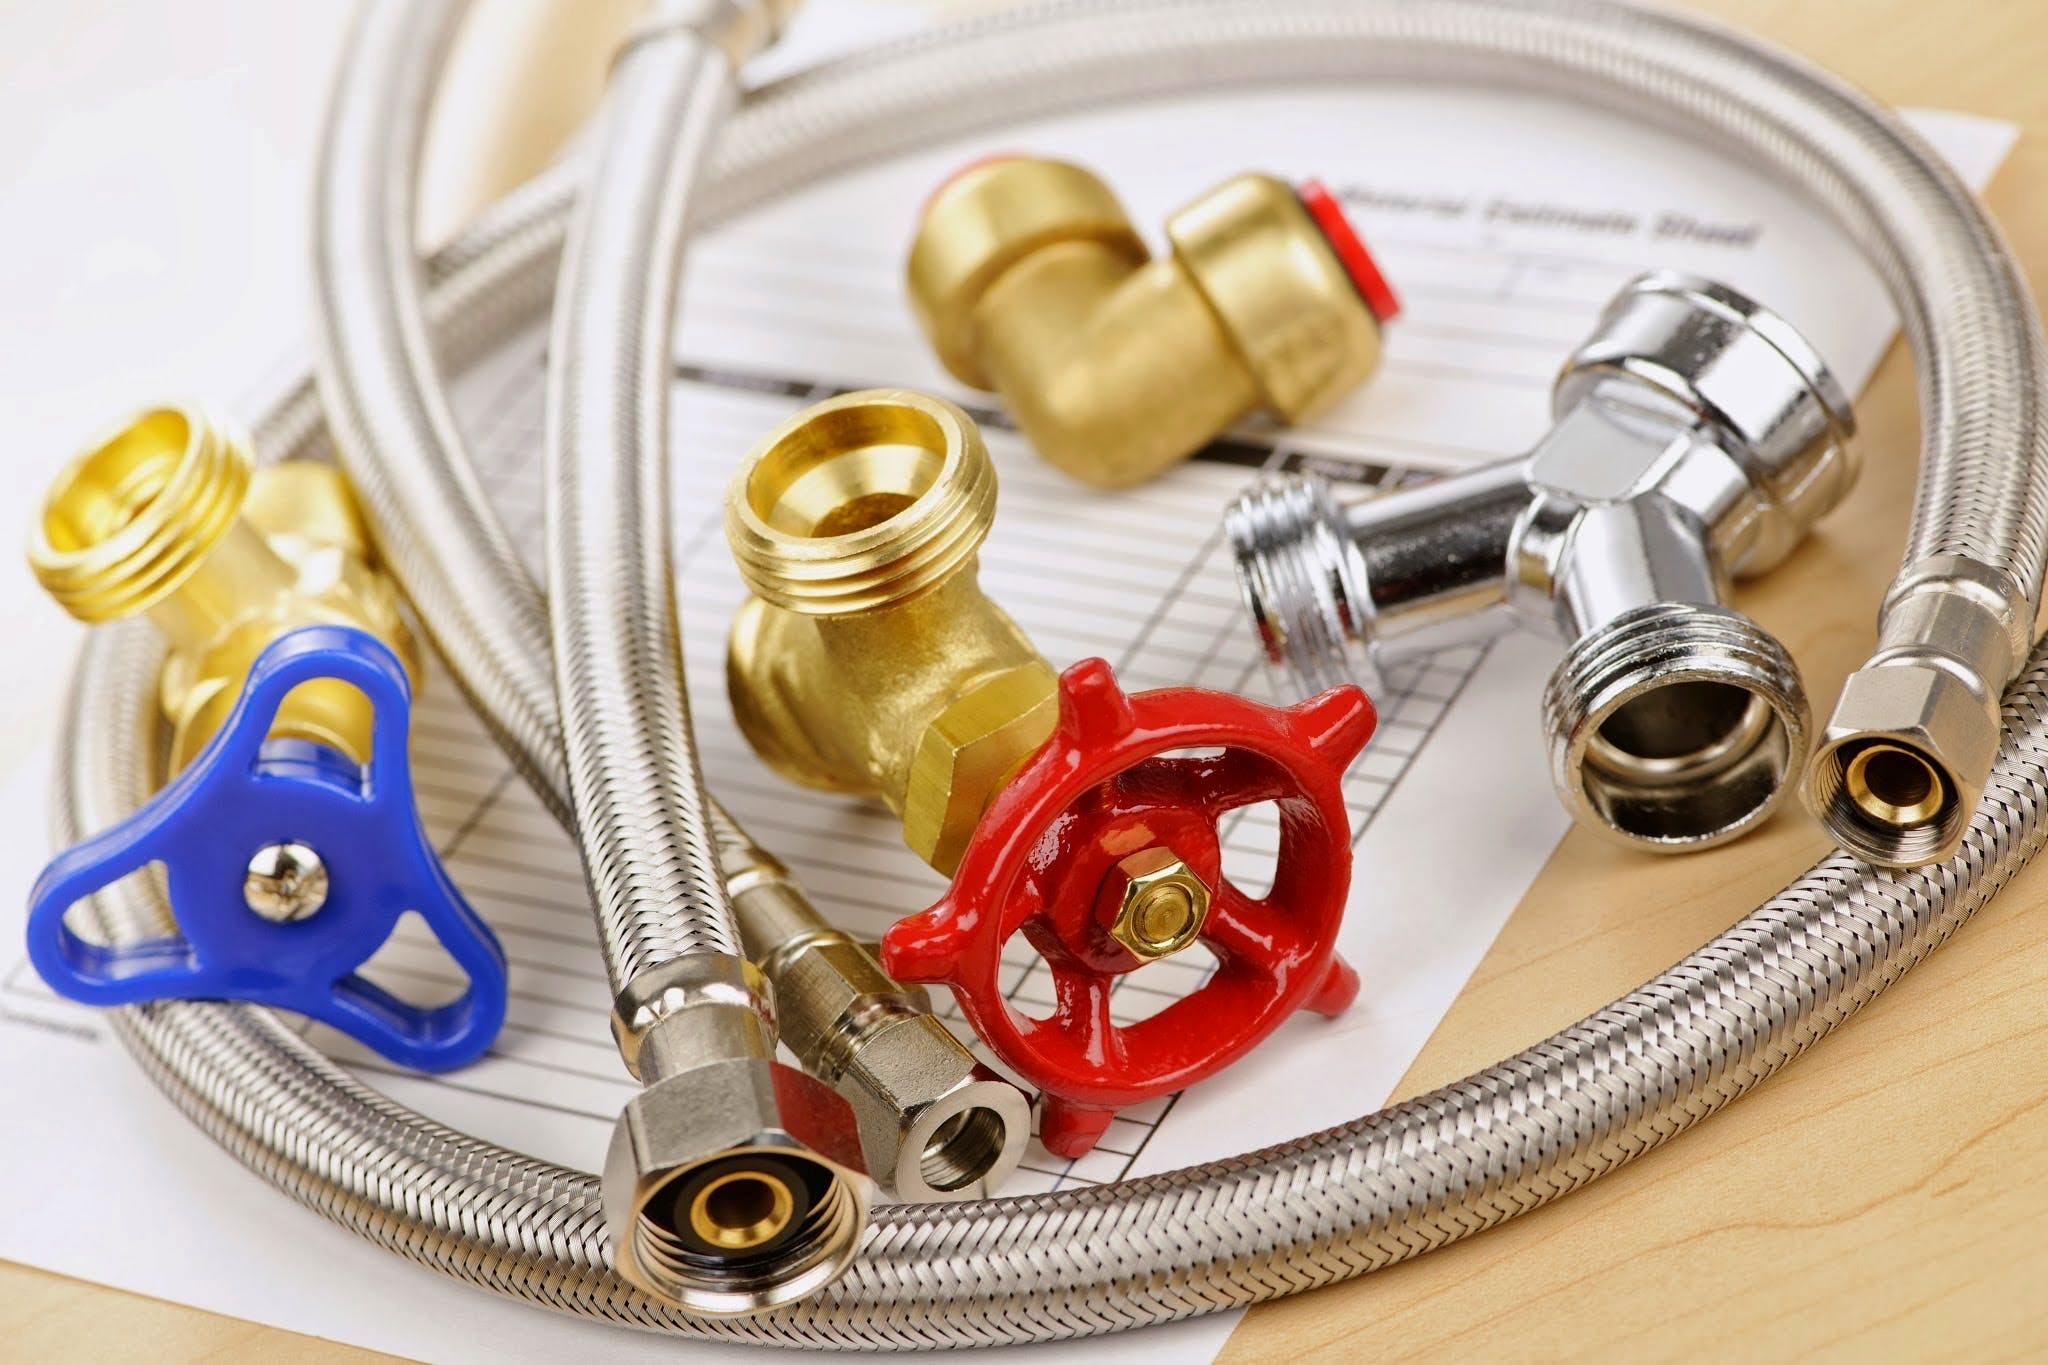 Smart Plumbing And Electrical Solutions Spes